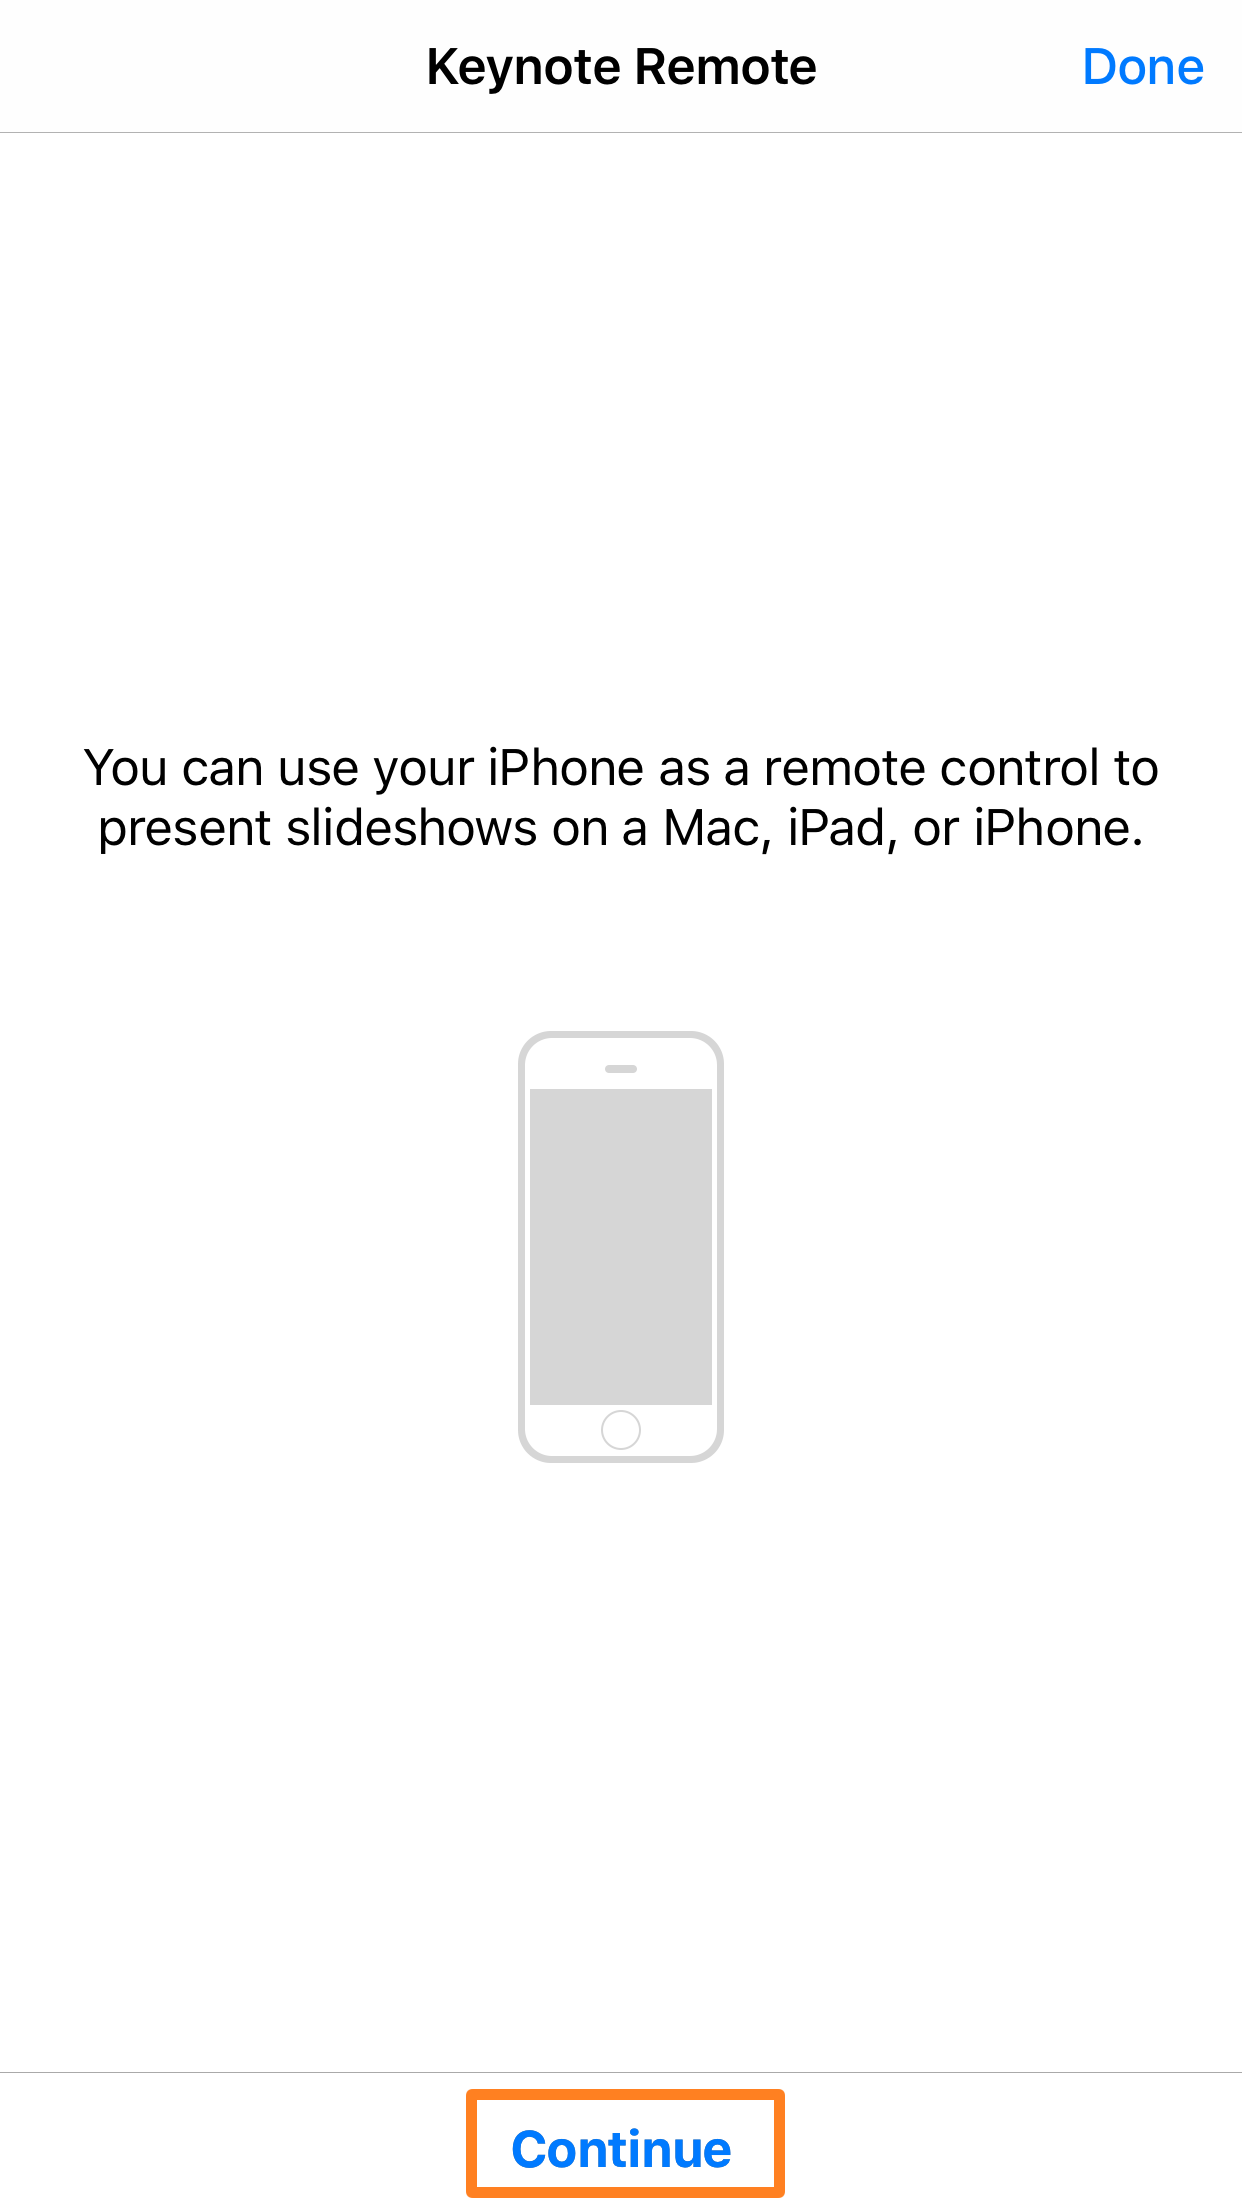 How to use your iPhone as a remote for the Keynote app on